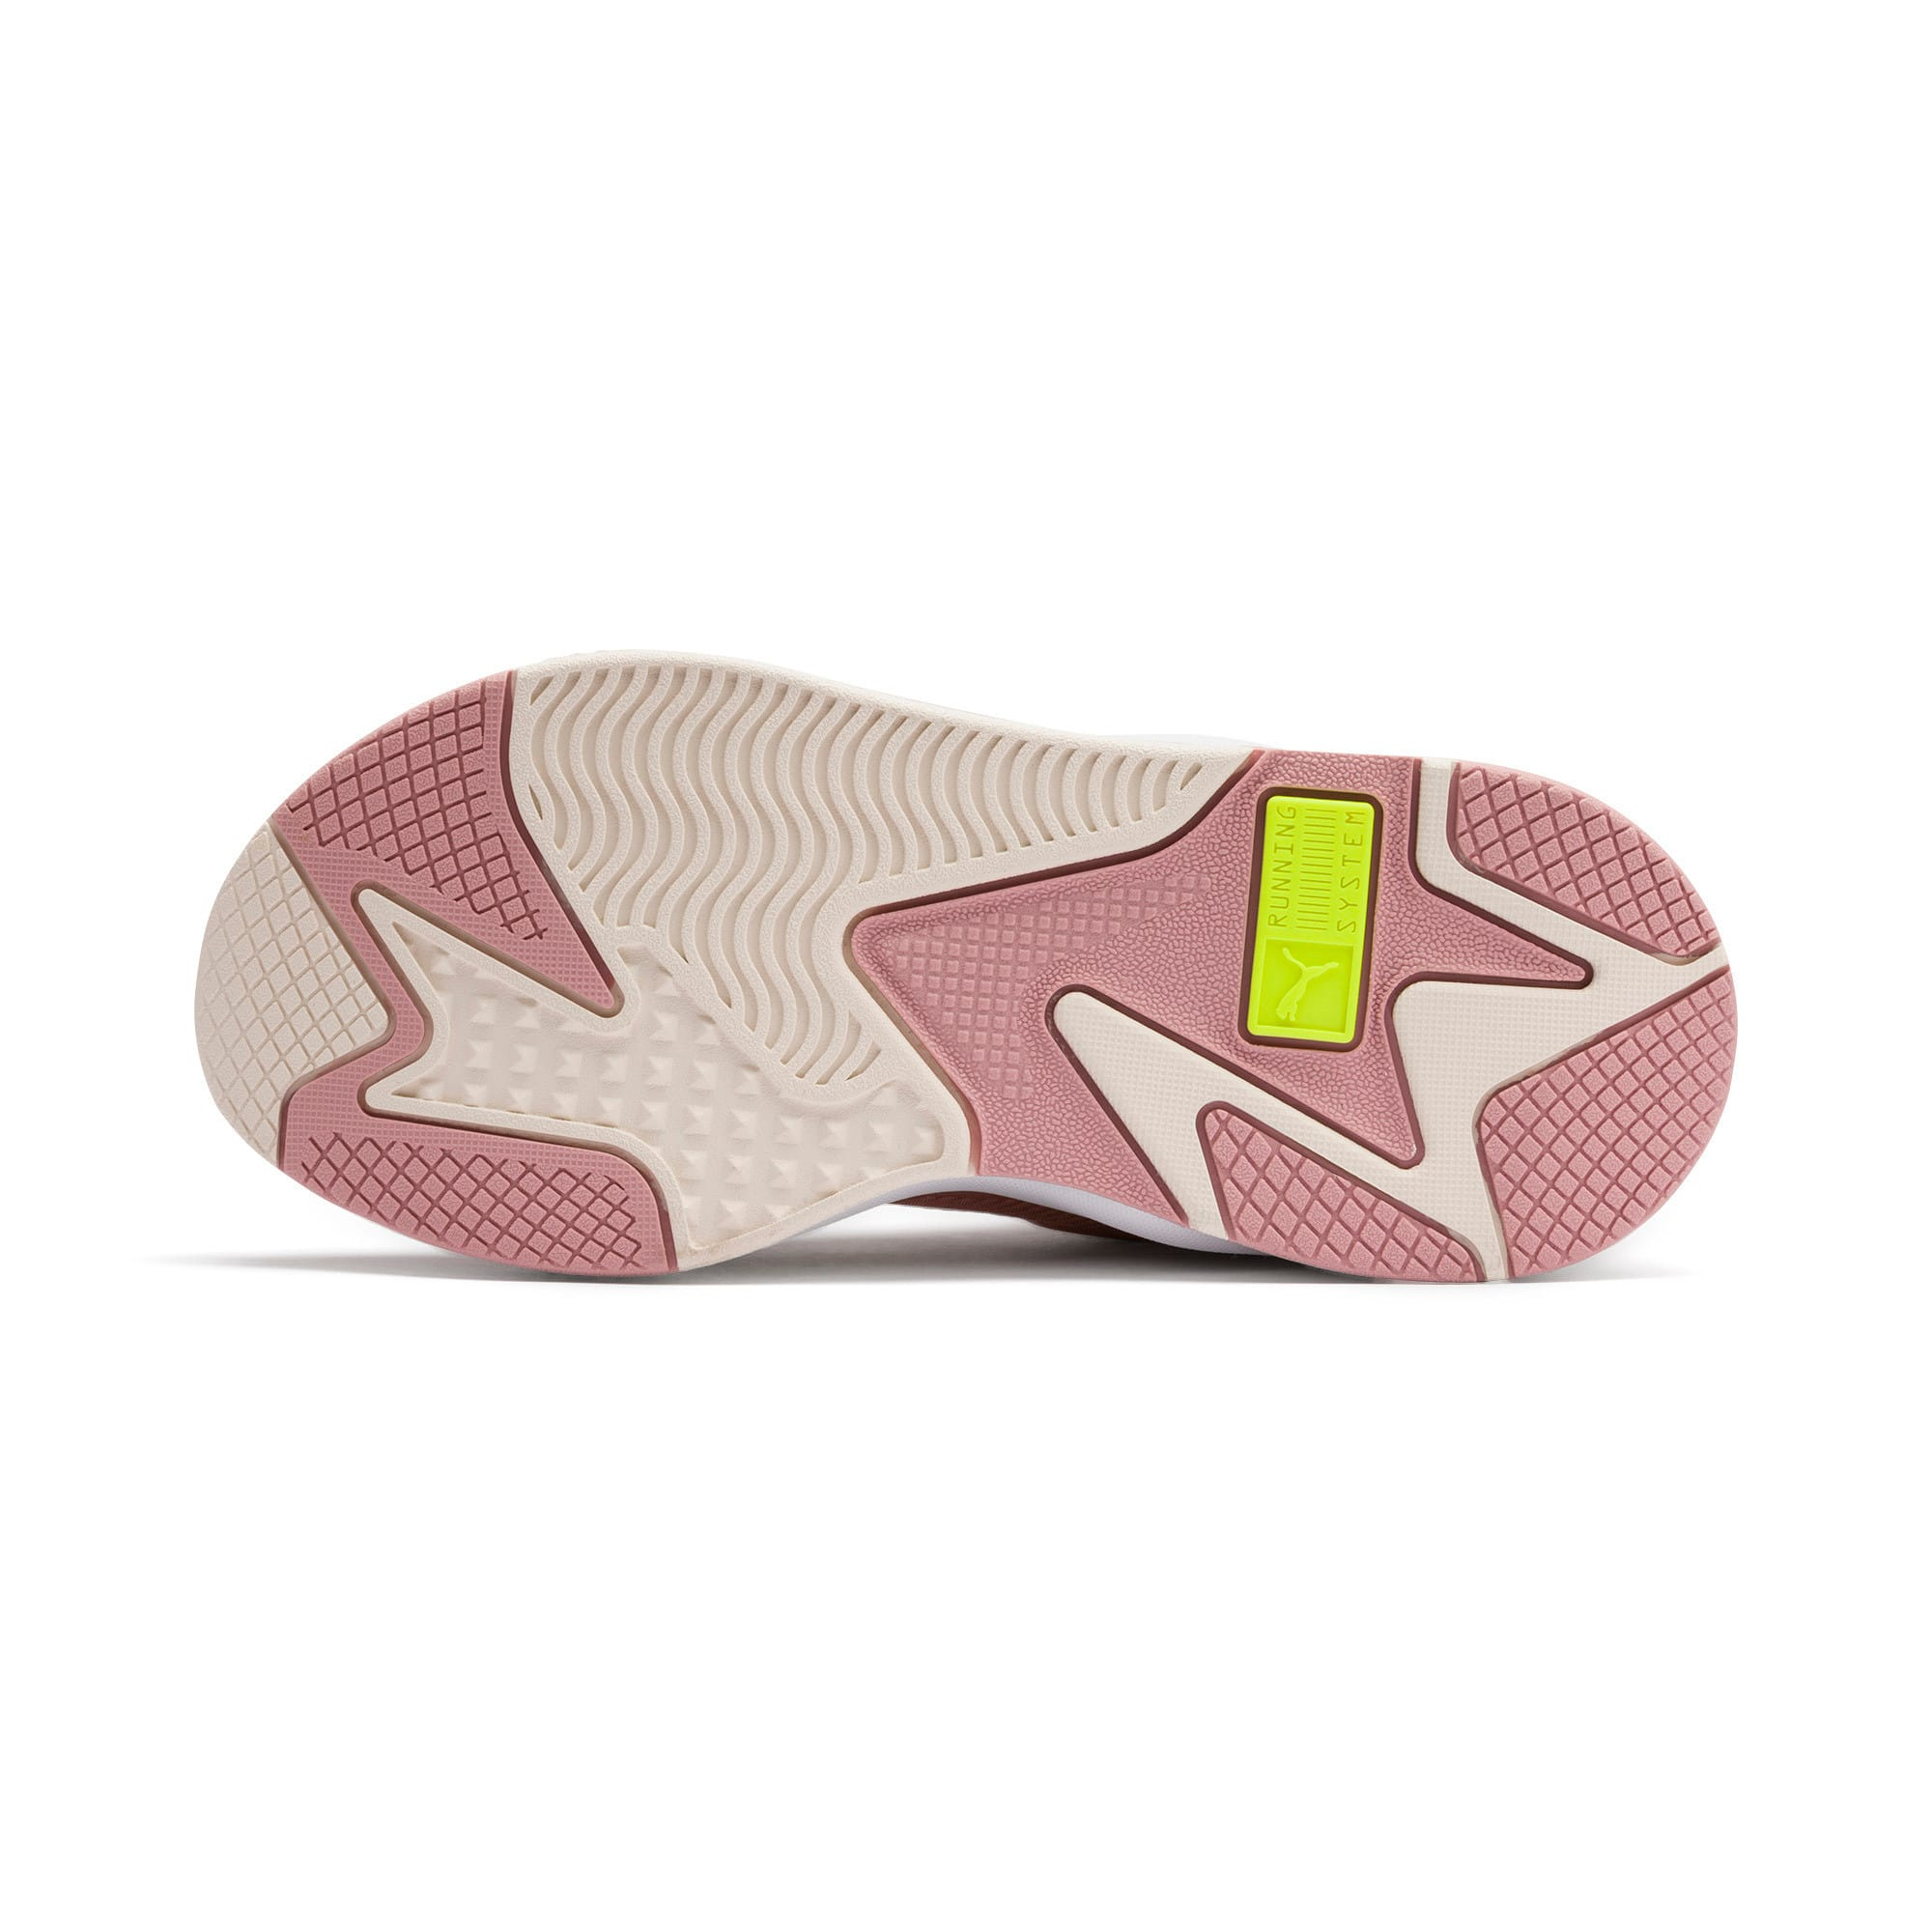 Thumbnail 5 of RS-X Softcase Sneaker, Bridal Rose-Pastel Parchment, medium